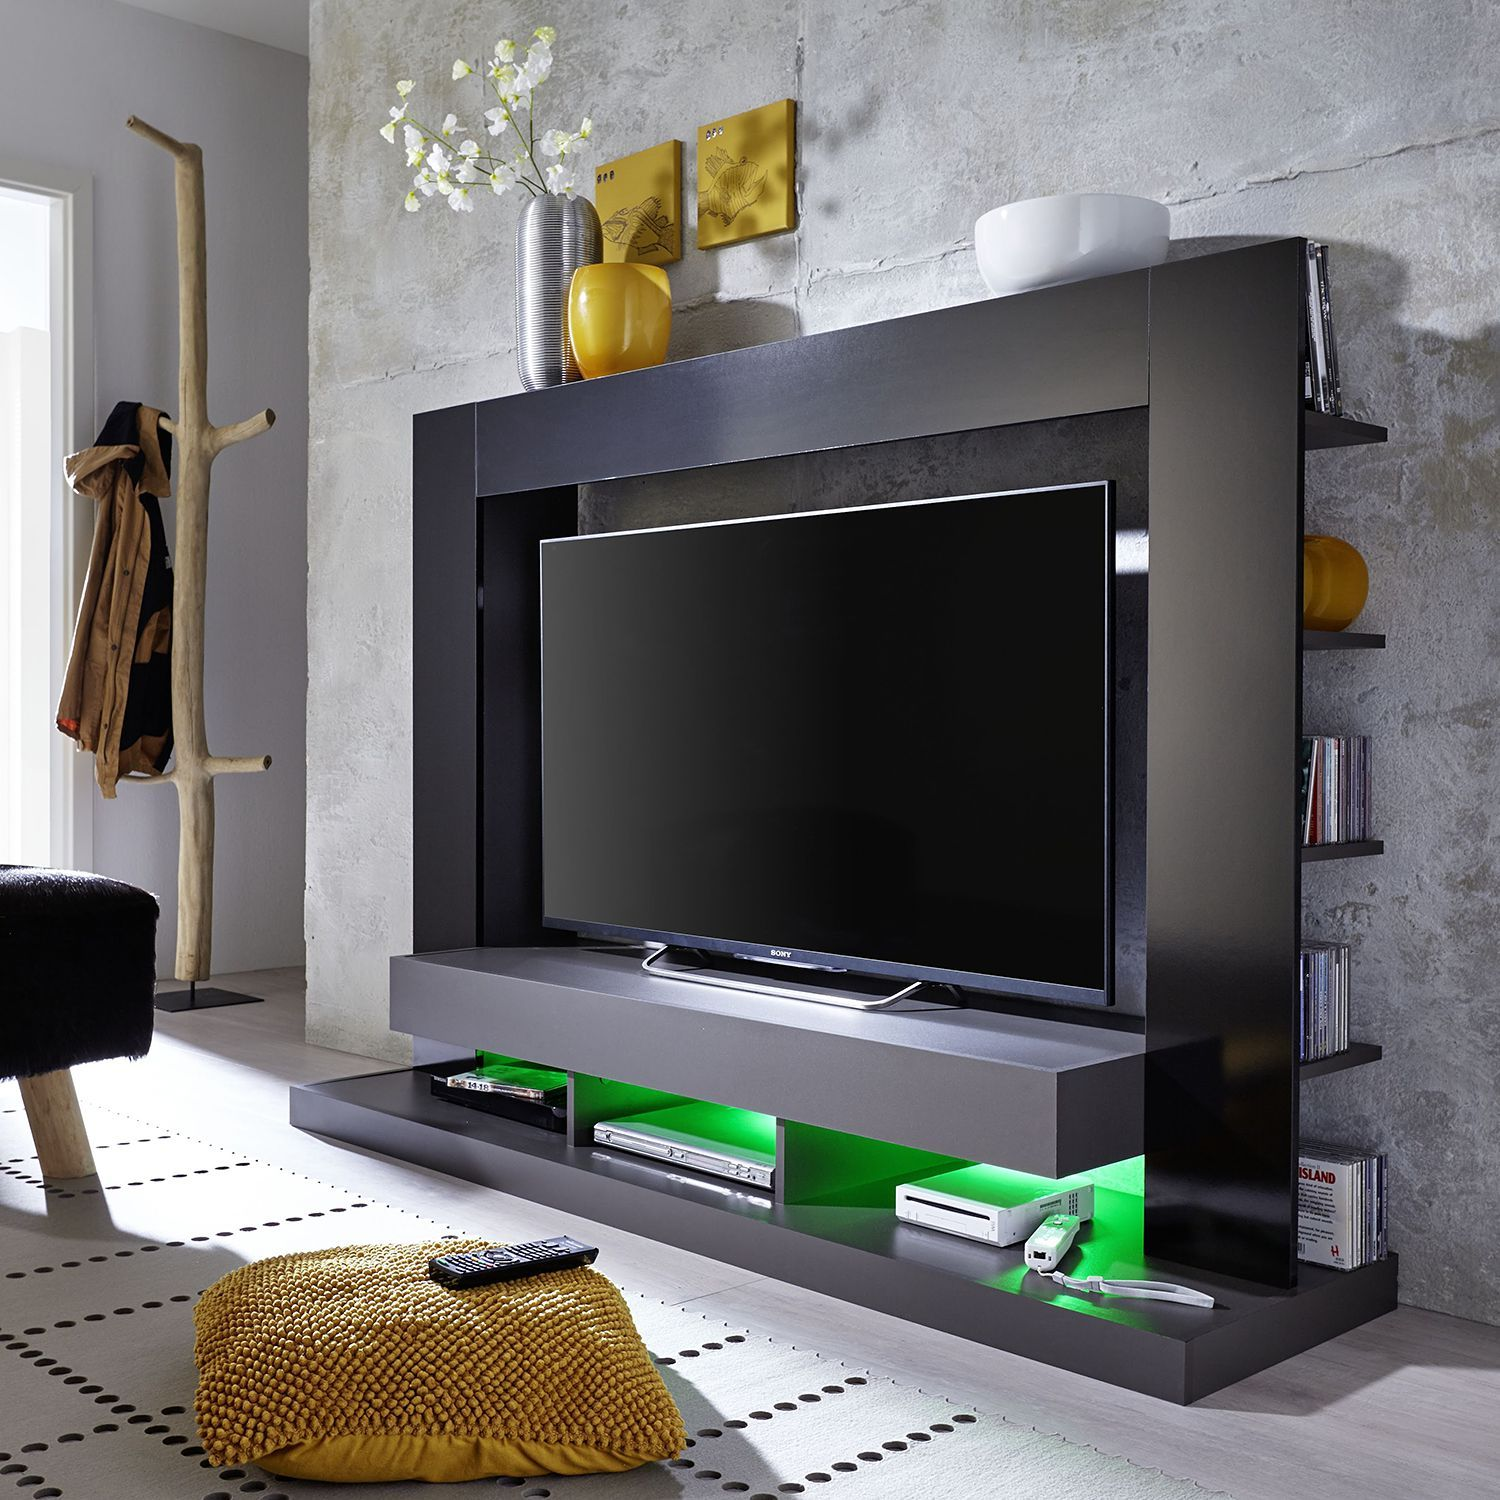 pin von ladendirekt auf tv hifi m bel pinterest tv w nde wohnzimmer tv und tv hifi m bel. Black Bedroom Furniture Sets. Home Design Ideas